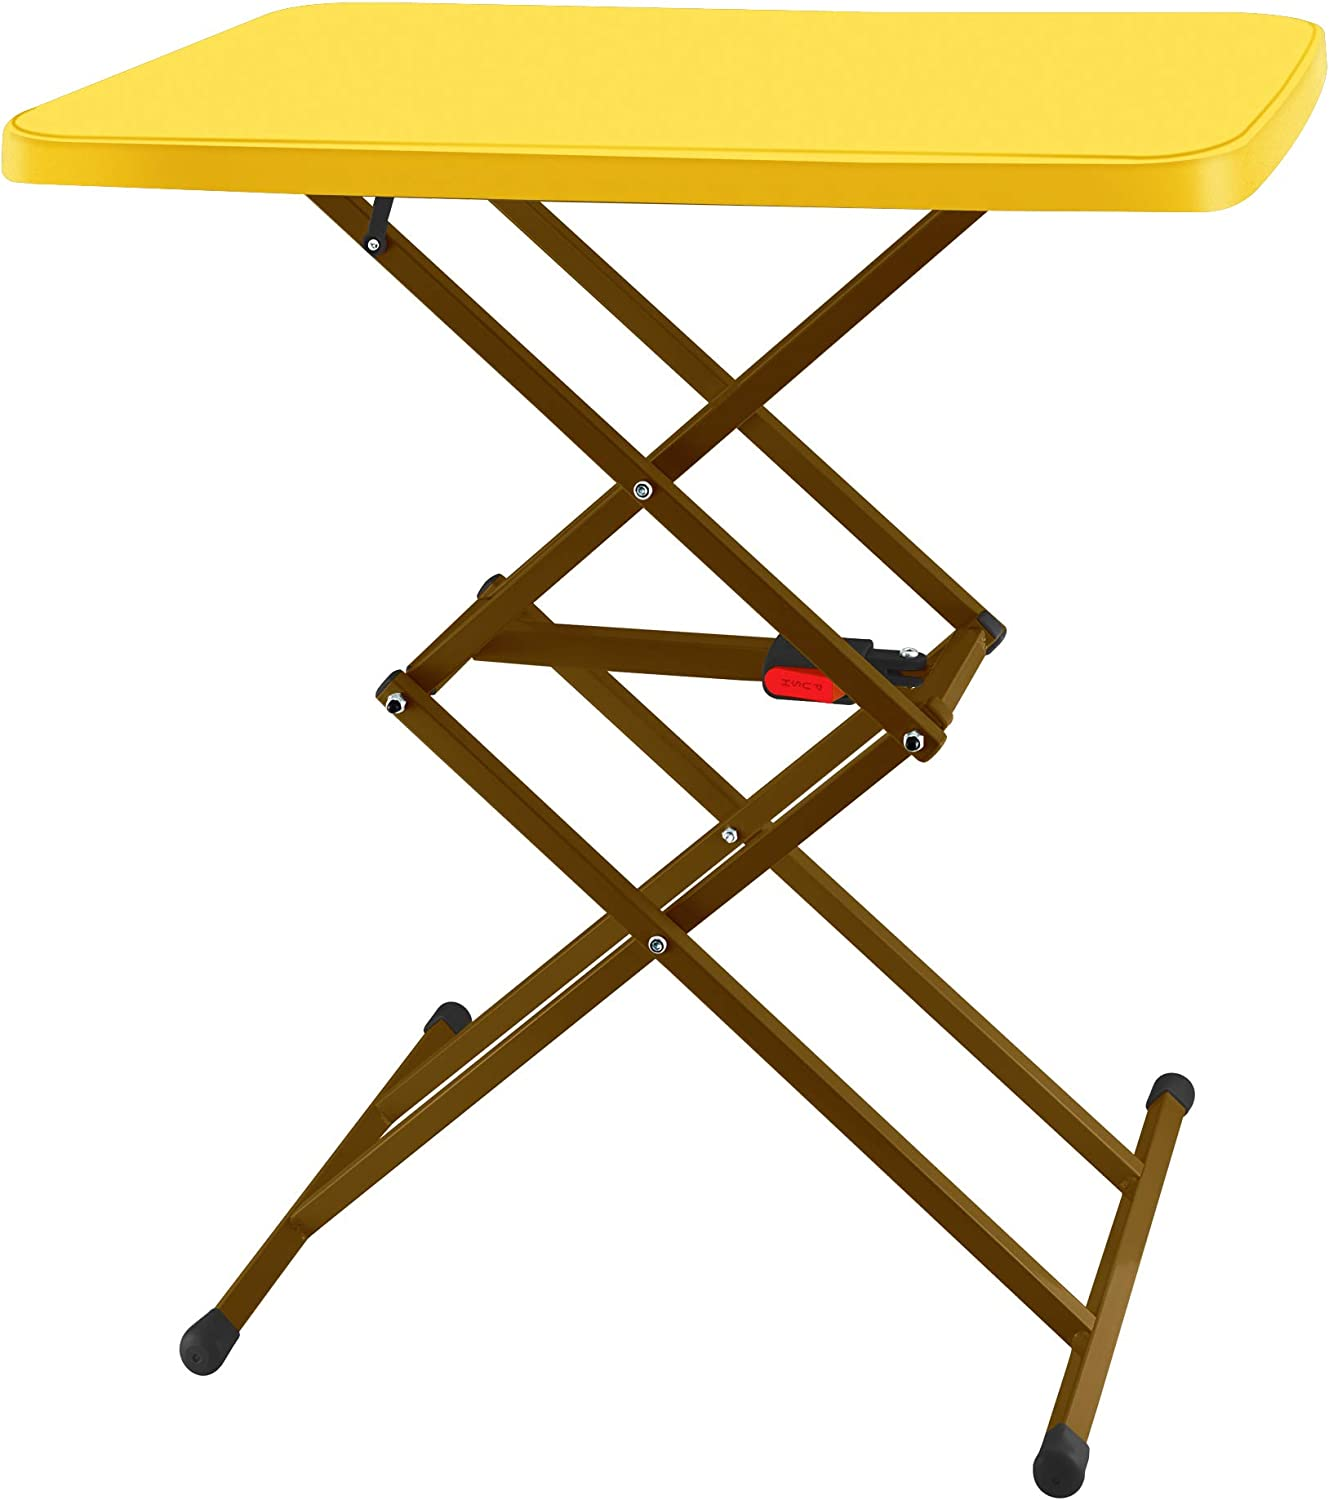 SOUNDANCE Adjustable Folding Table, Lightweight and Portable TV Tray, Sturdy Dinner Tables for Eating, Easy to Fold and Put Away, Zero Assembly Required Desk for Indoor and Outdoor Use, Yellow